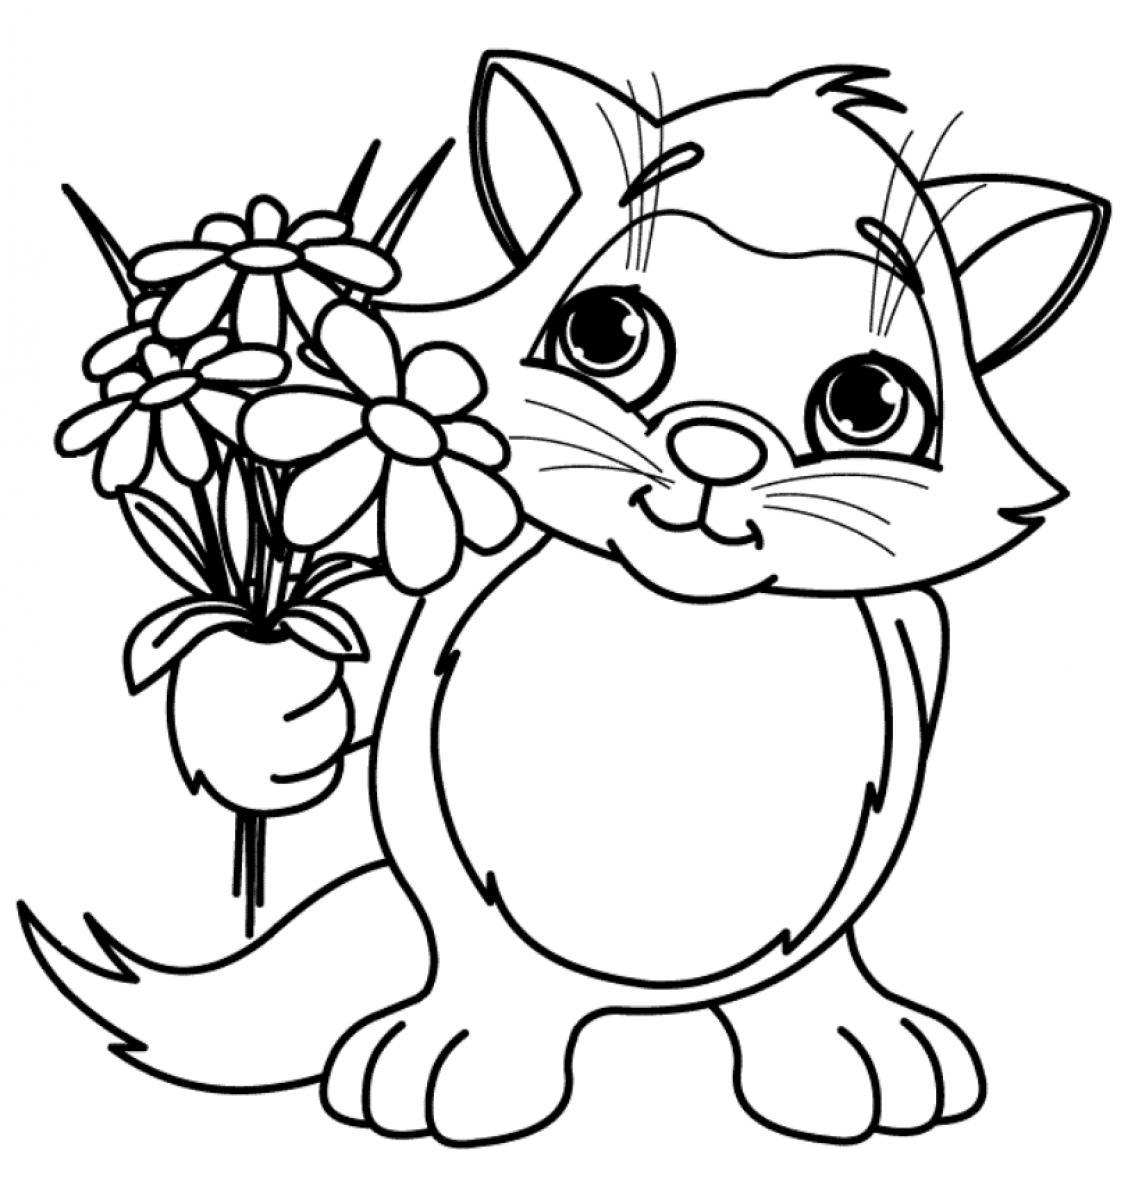 printable flowers coloring pages free printable flower coloring pages for kids best coloring printable flowers pages